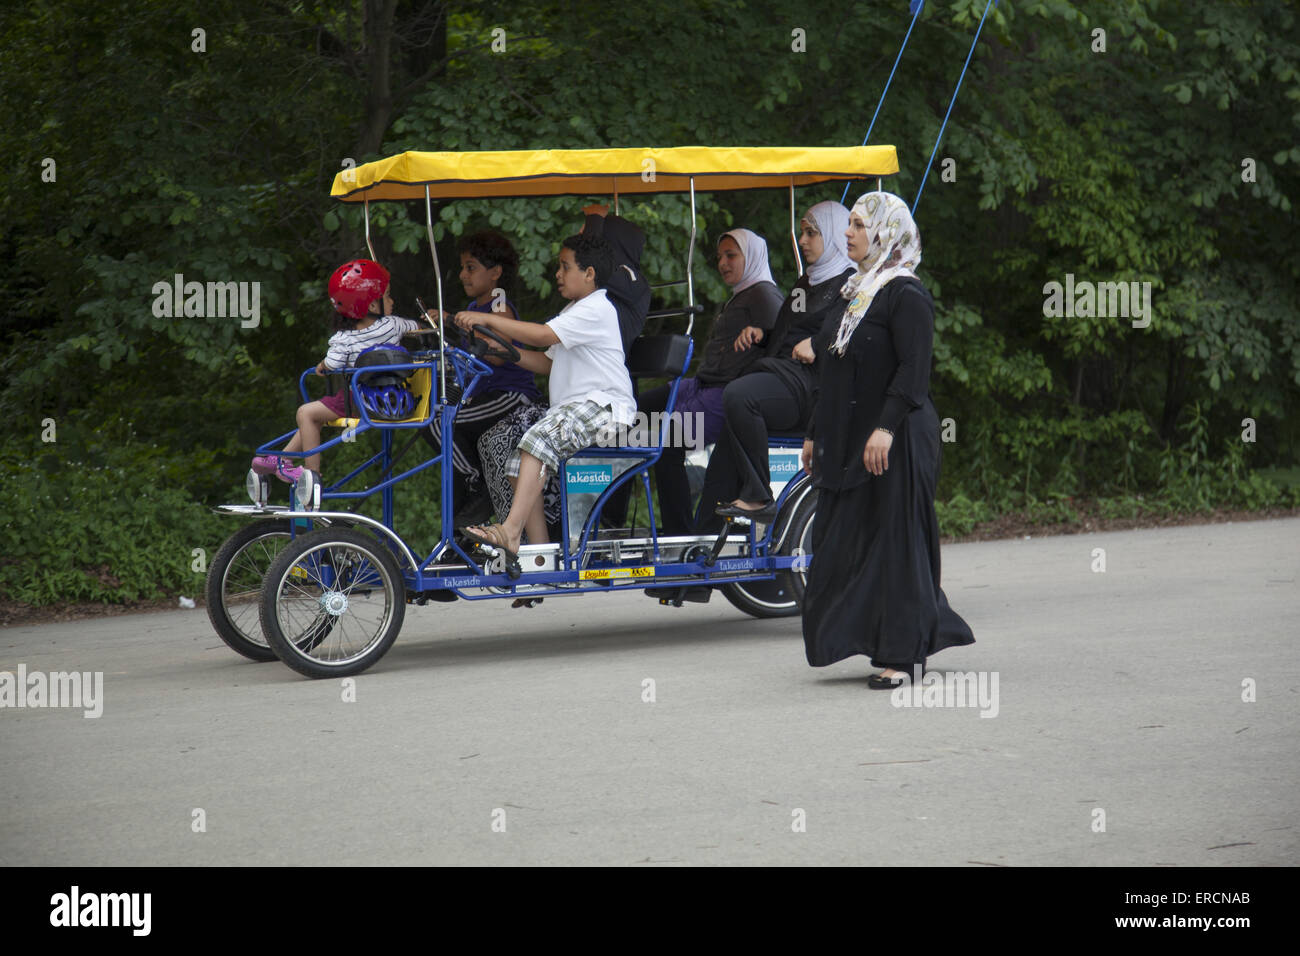 Muslim women with children have a nice time with a rented pedal surrey  in Prospect Park, Brooklyn, NY. - Stock Image